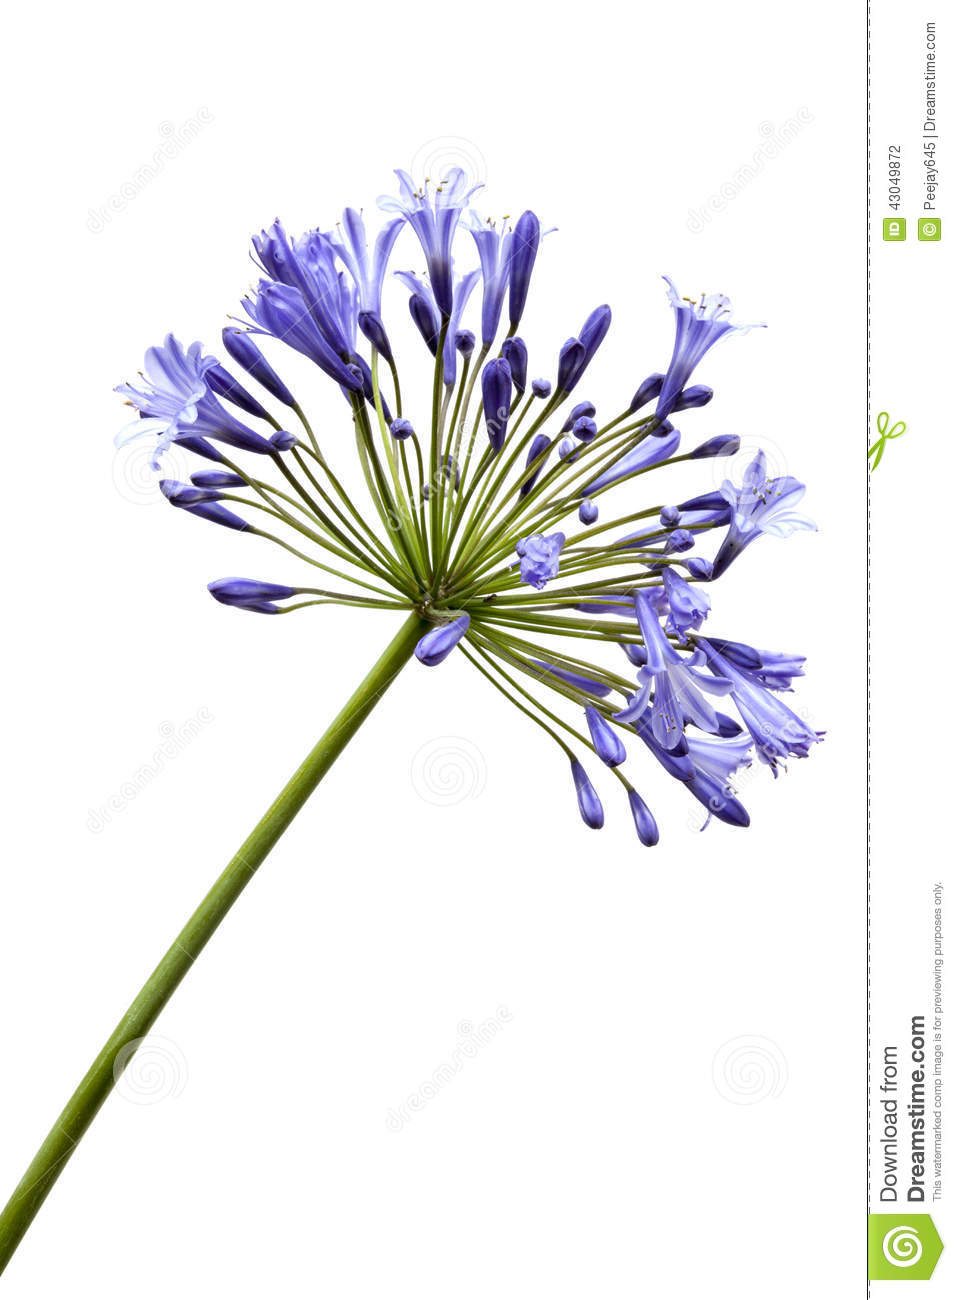 Agapanthus Stock Photo.